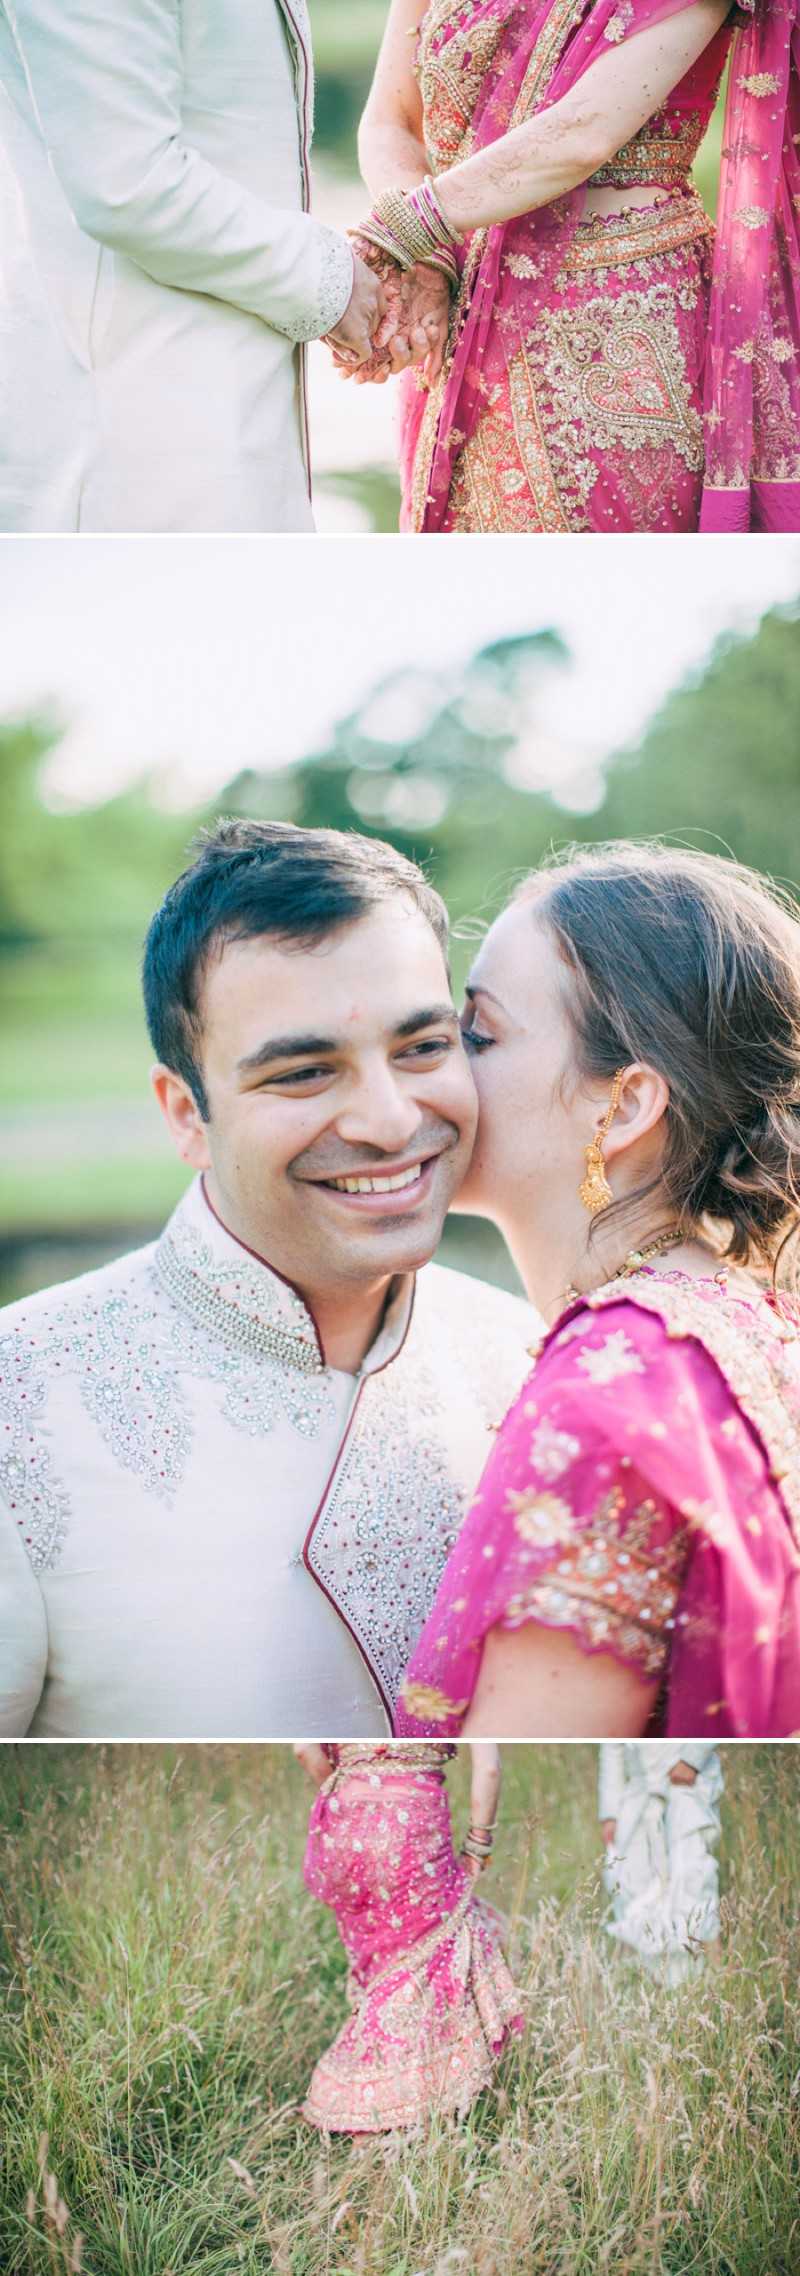 An Exotic Indian and English Fusion Wedding At Sefton Park Palm House In Liverpool With A Beautiful Vintage Lagonda And A Pink Handpicked Bouquet By Wookie Photography._0008